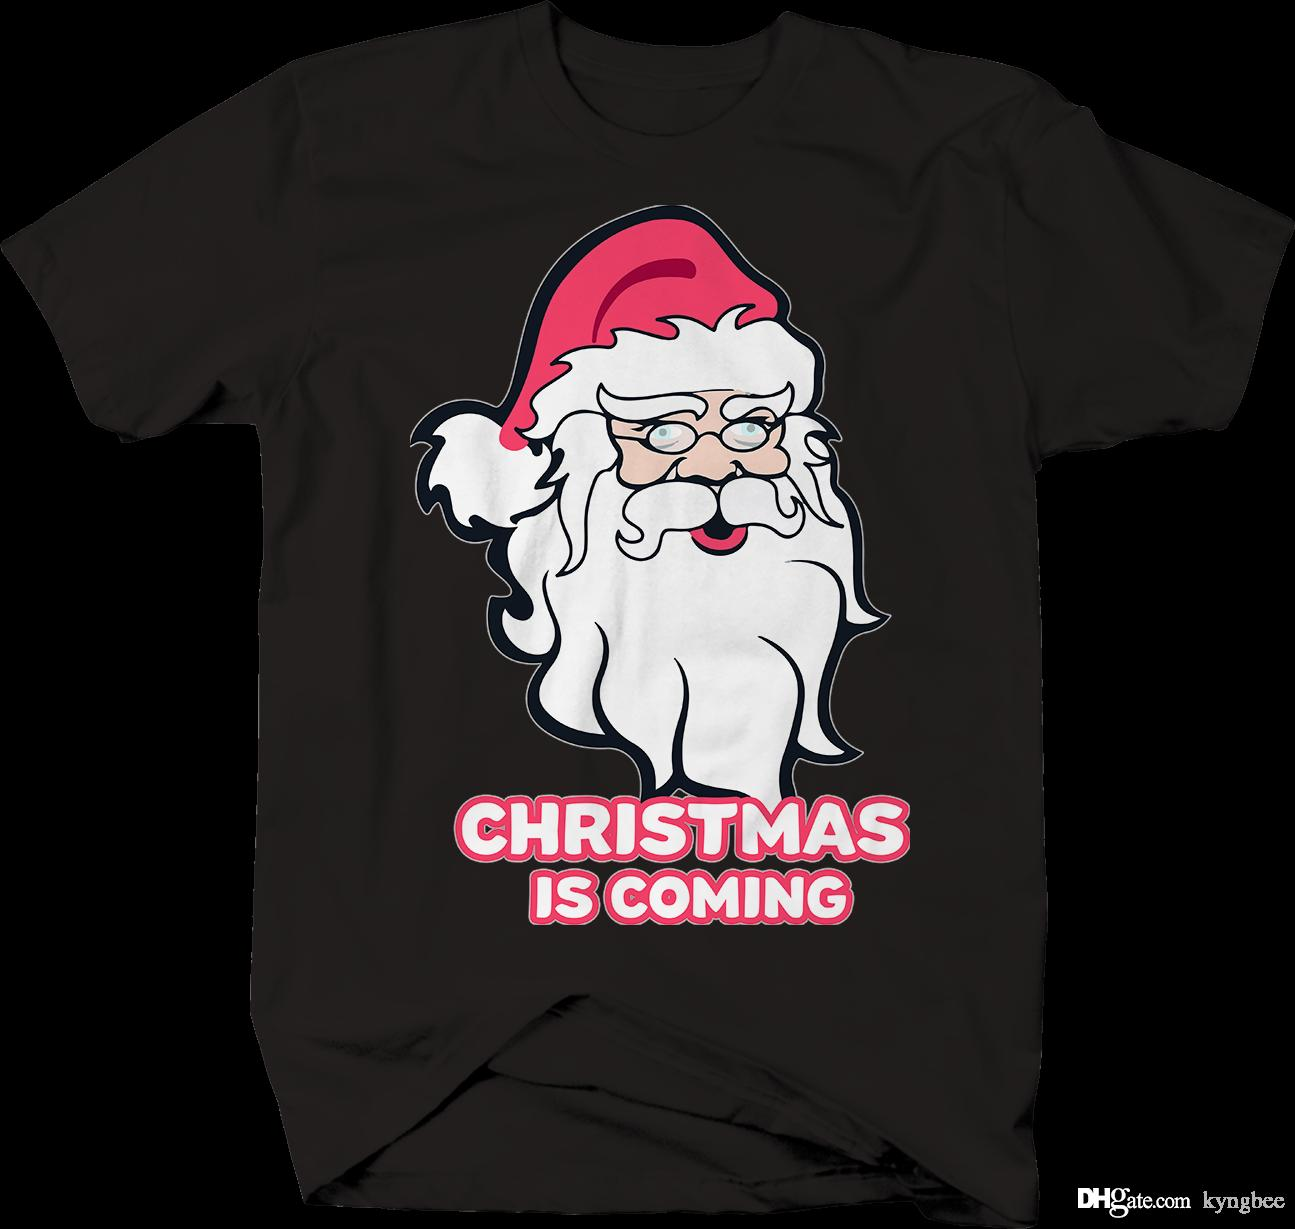 4731c4b7c Christmas Is Coming Winter Santa Claus T Shirt Online T Shirts Funky T  Shirts From Kyngbee, $10.72| DHgate.Com